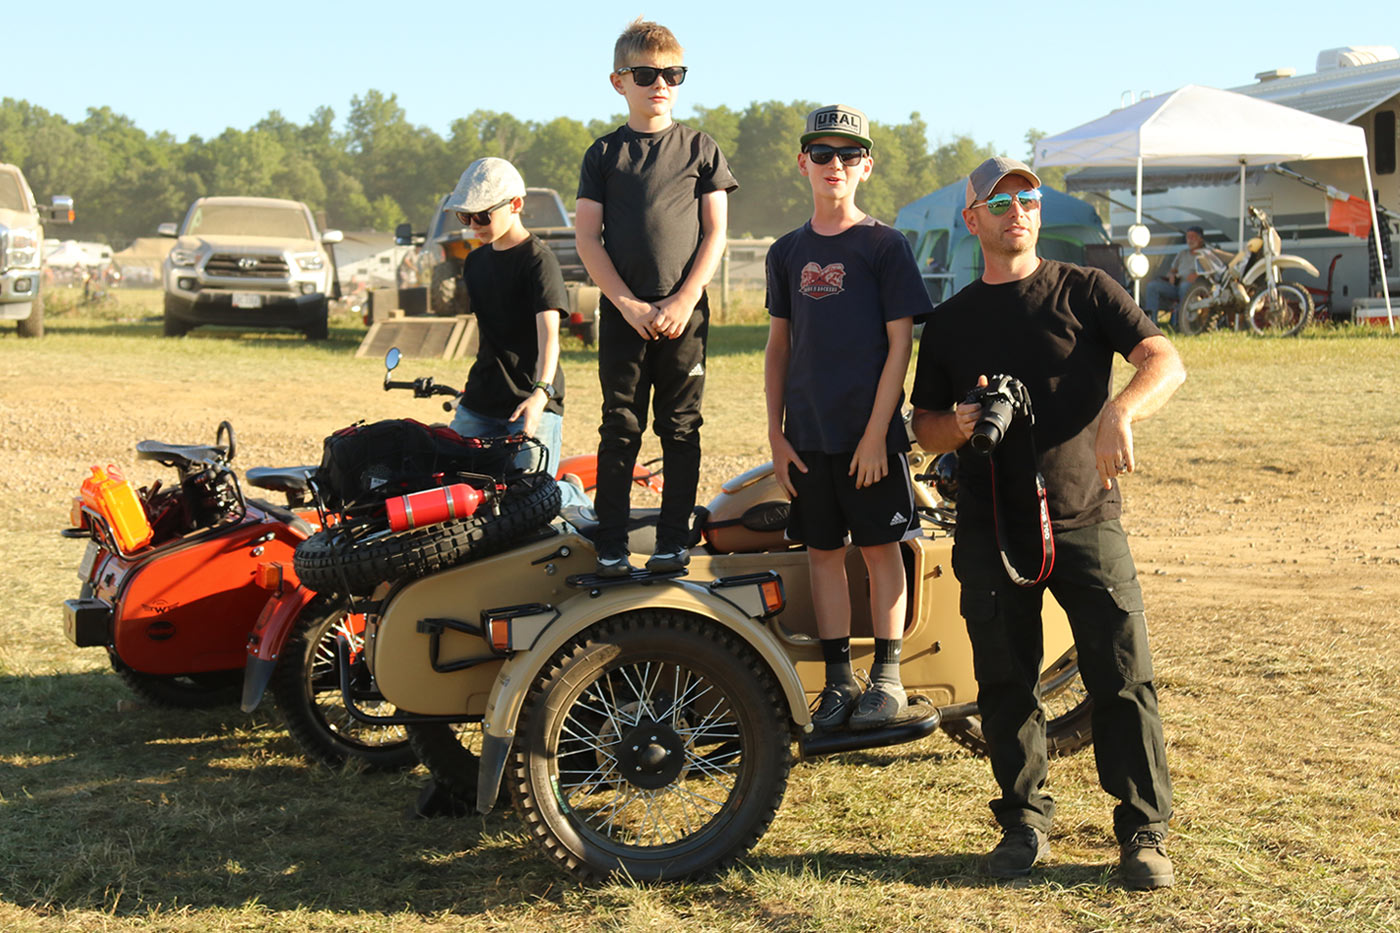 AMA Vintage Motorcycle Days